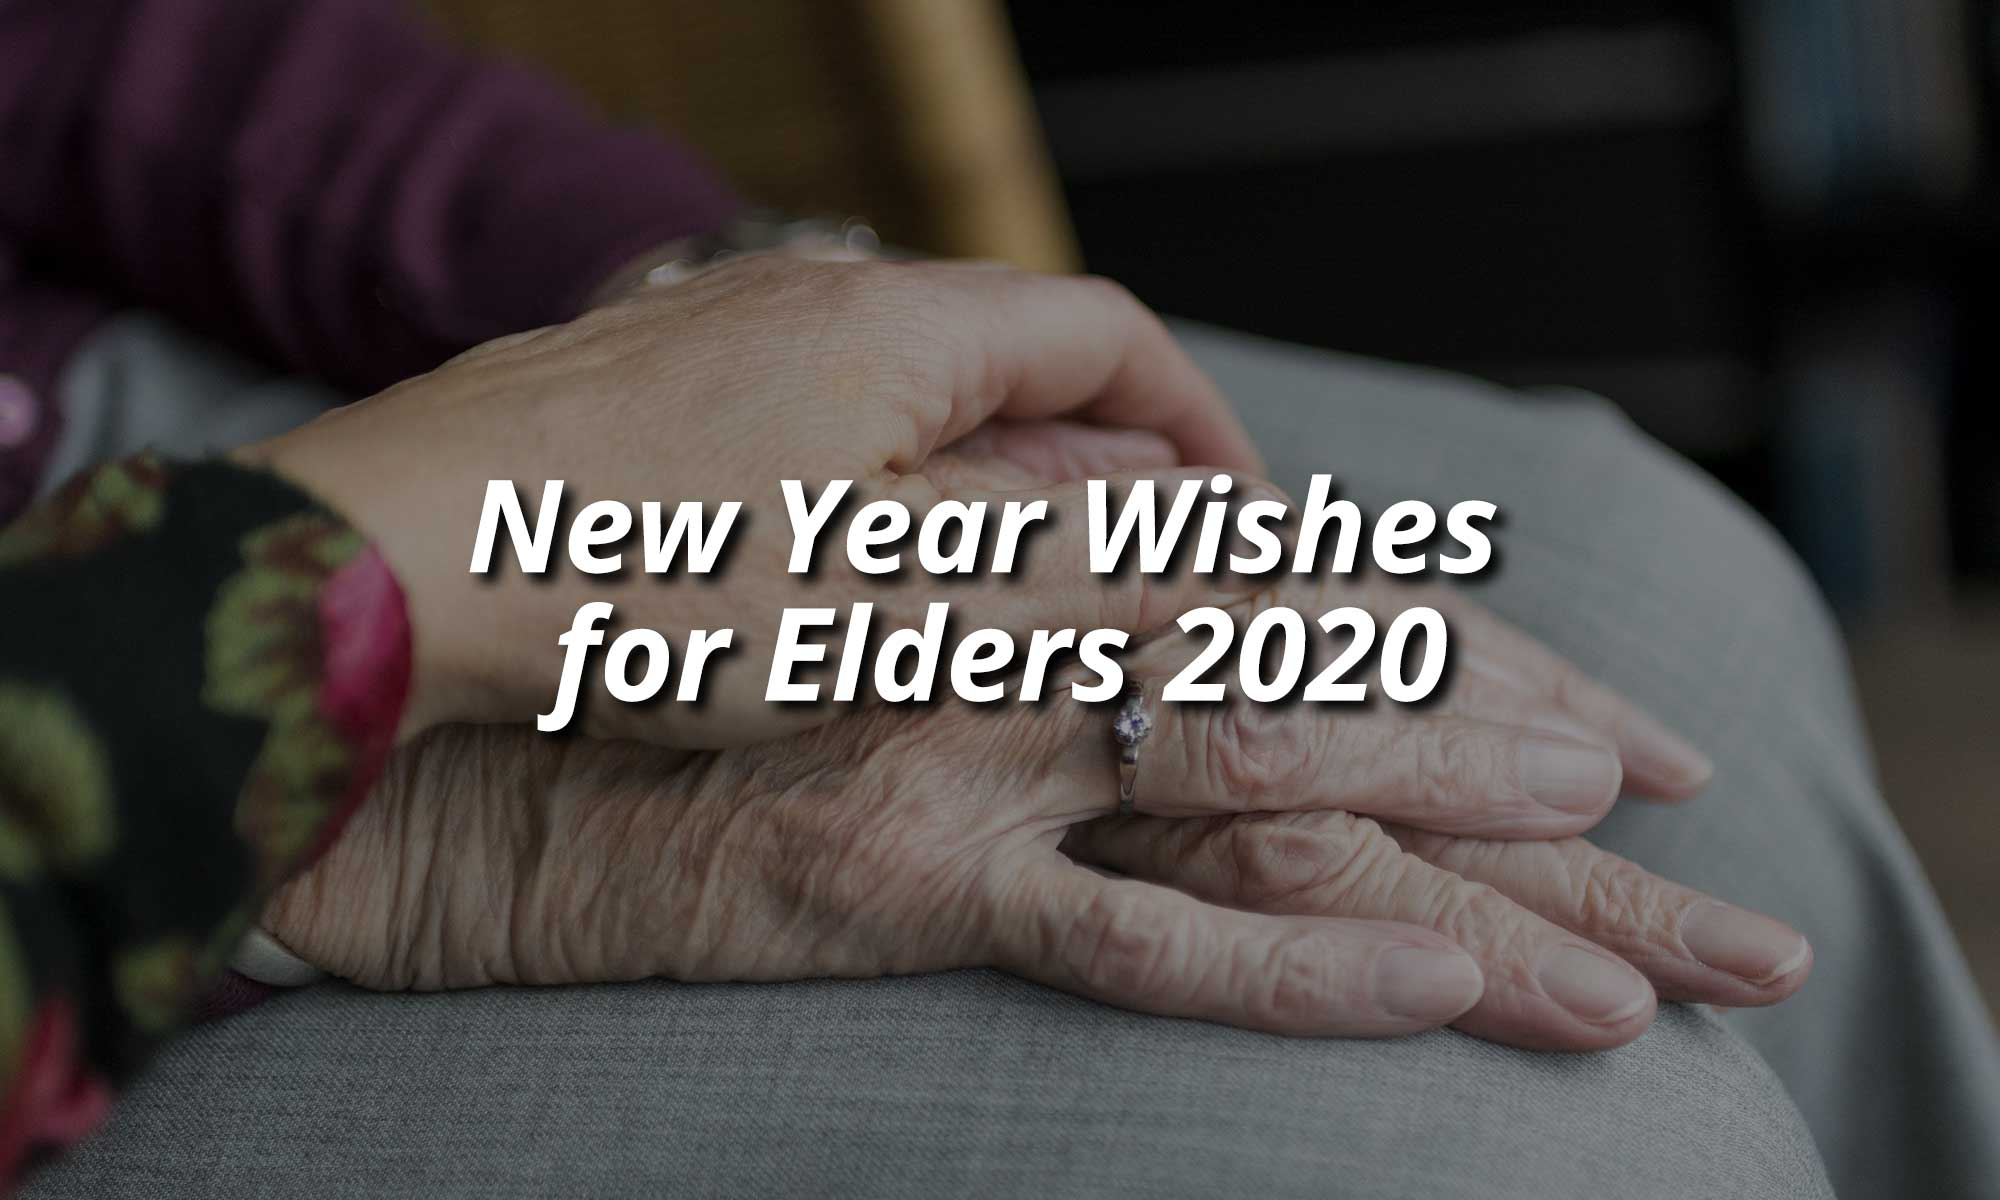 New Year Wishes for Elders 2020